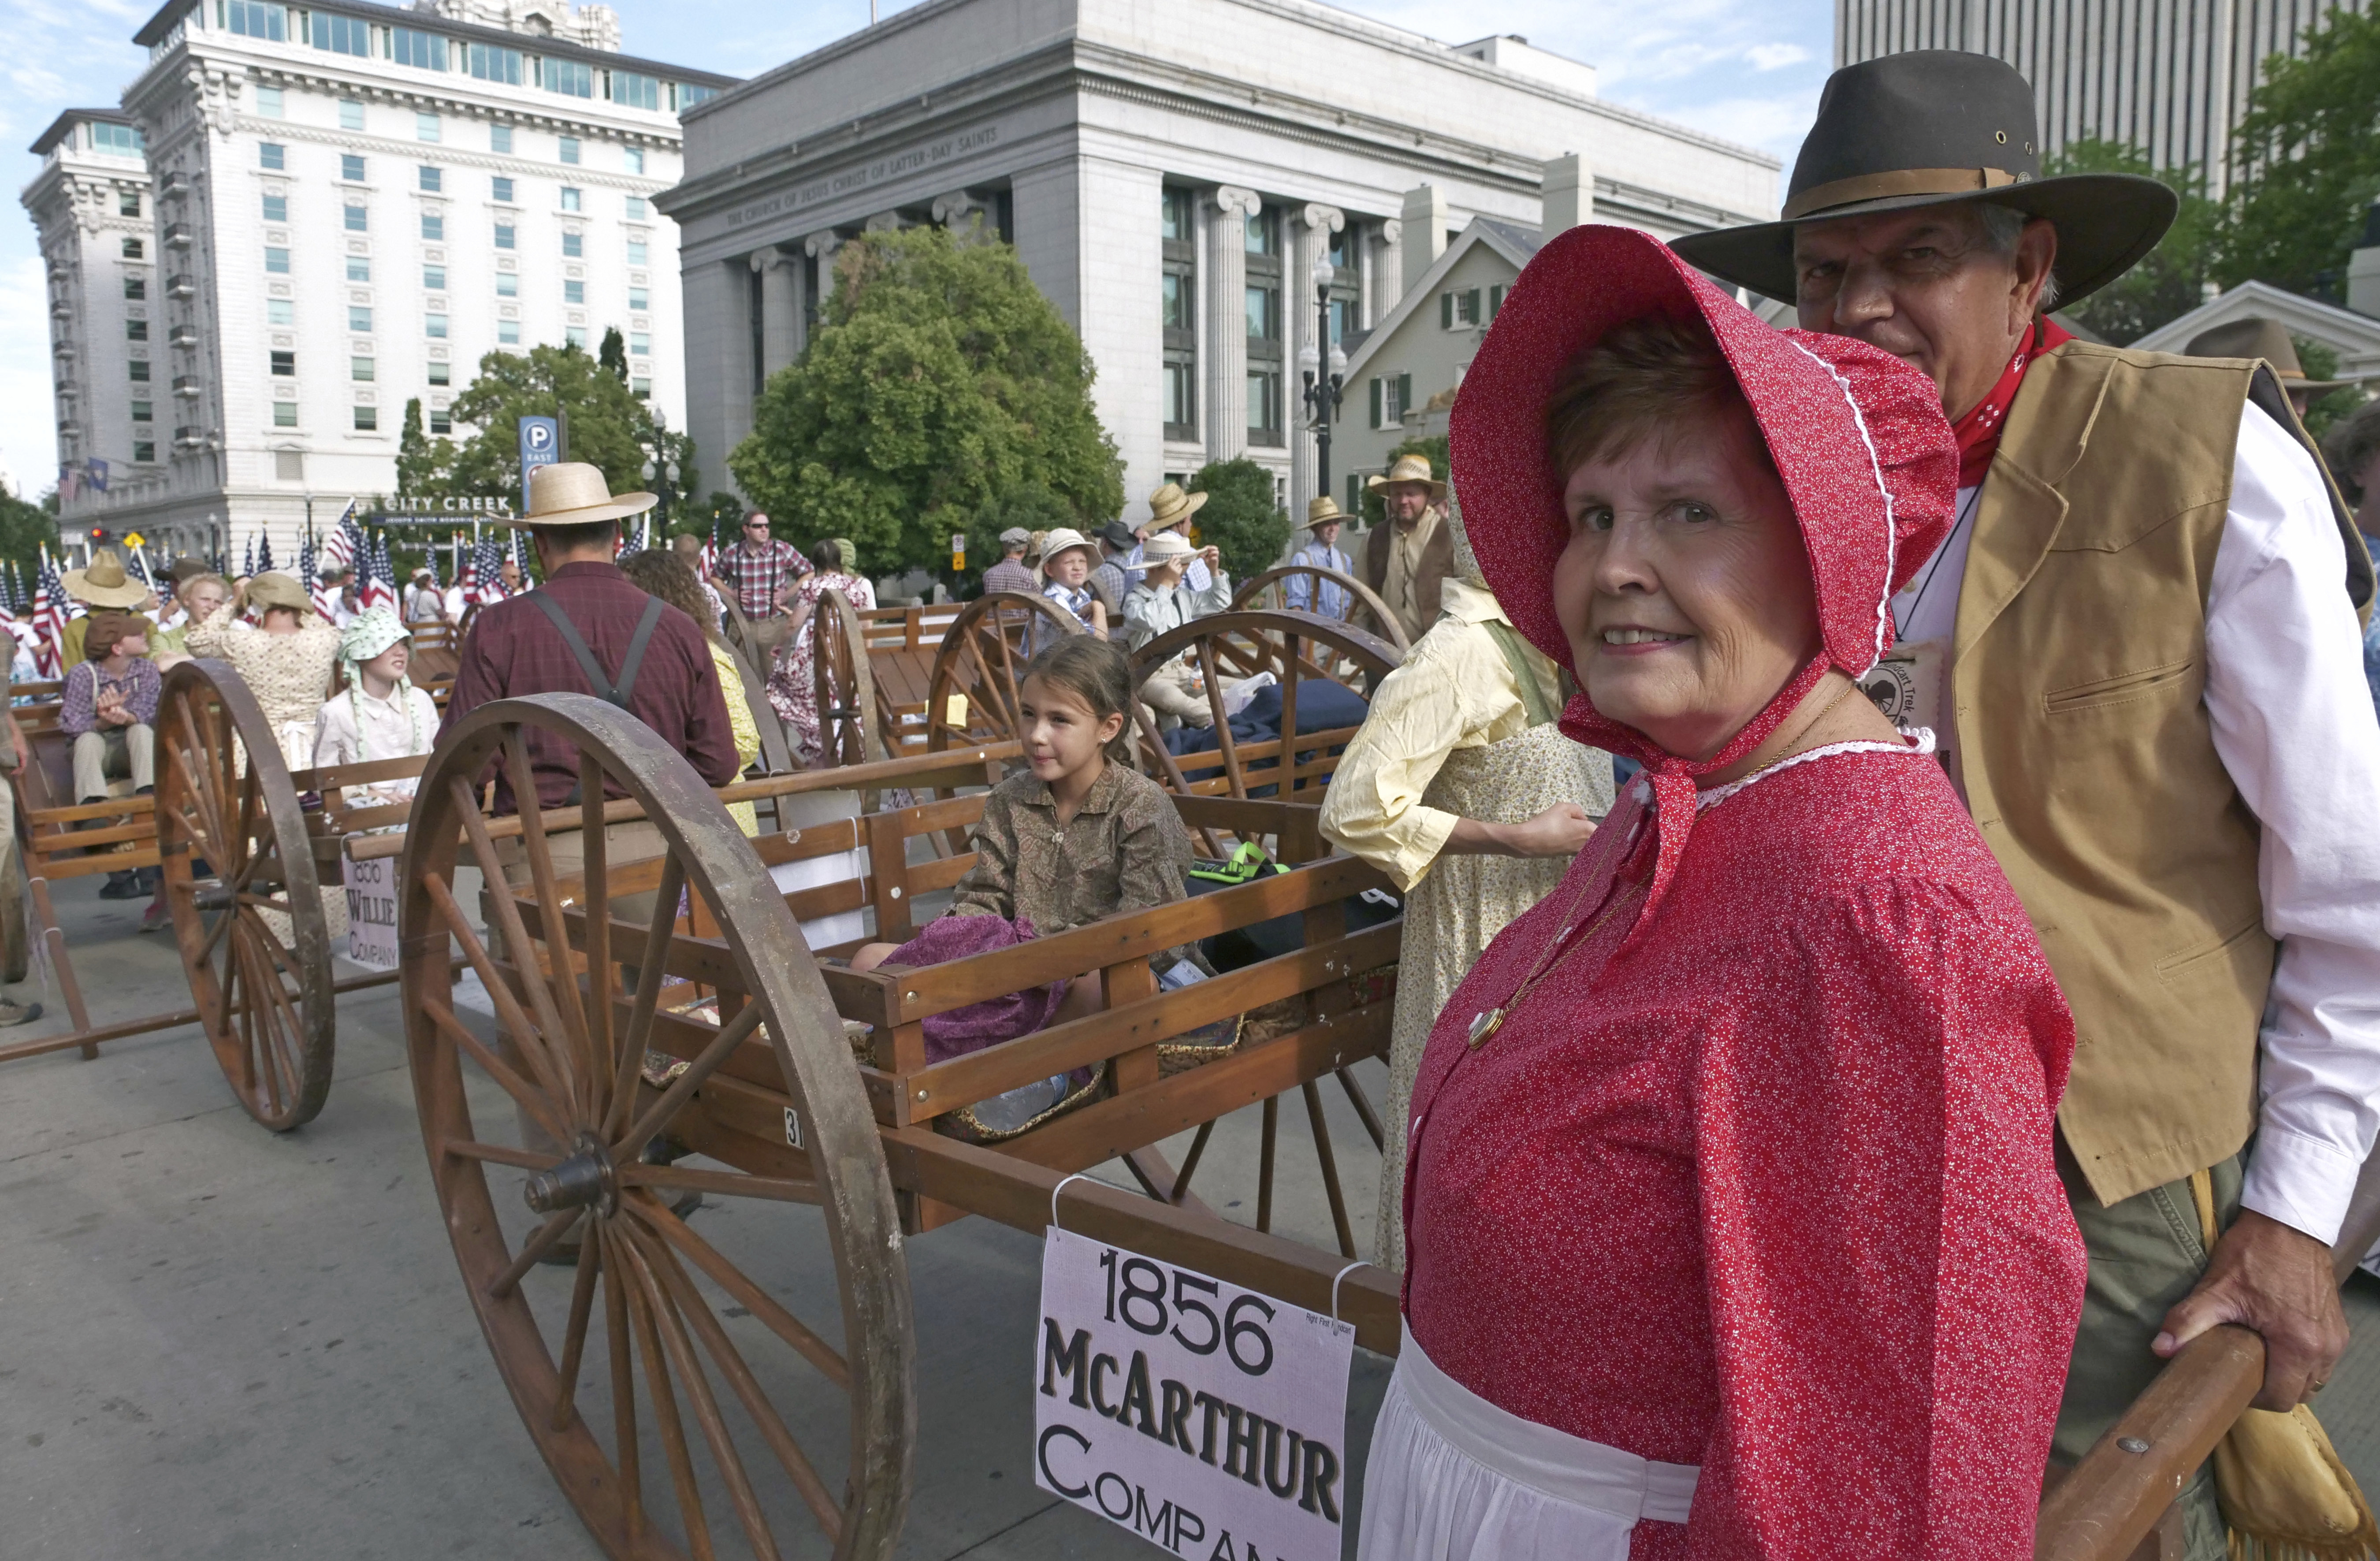 People celebrate the state's Mormon heritage during the Pioneer Day parade Tuesday, July 24, 2018, in Salt Lake City, as people in Utah gather to celebrate the state's history and recognize Mormon pioneers who trekked West in search of religious freedom. Pioneer Day is a beloved only-in-Utah holiday every July 24 that features parades, rodeos, fireworks and more. (AP Photo/Rick Bowmer)